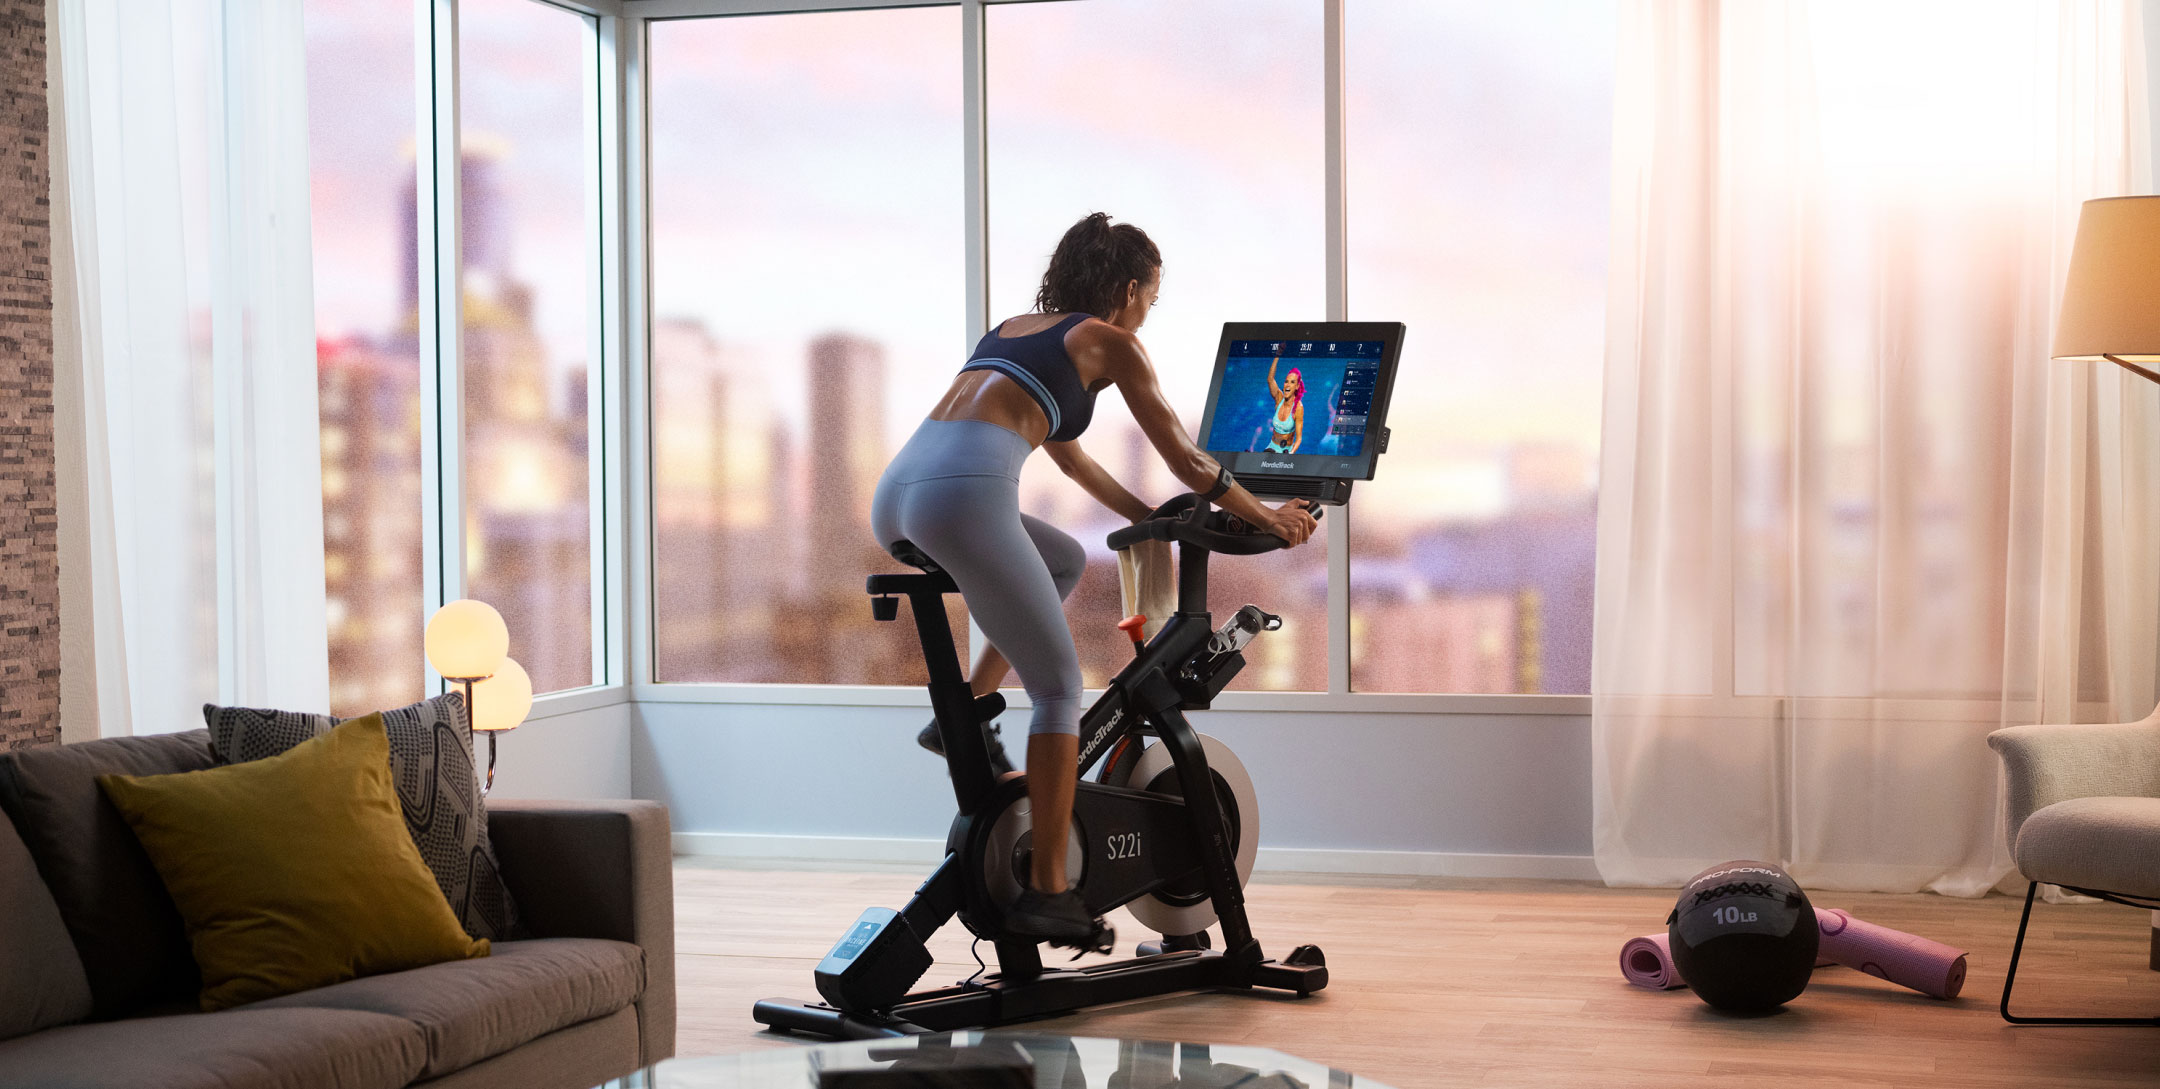 Woman riding exercise bike in her bedroom